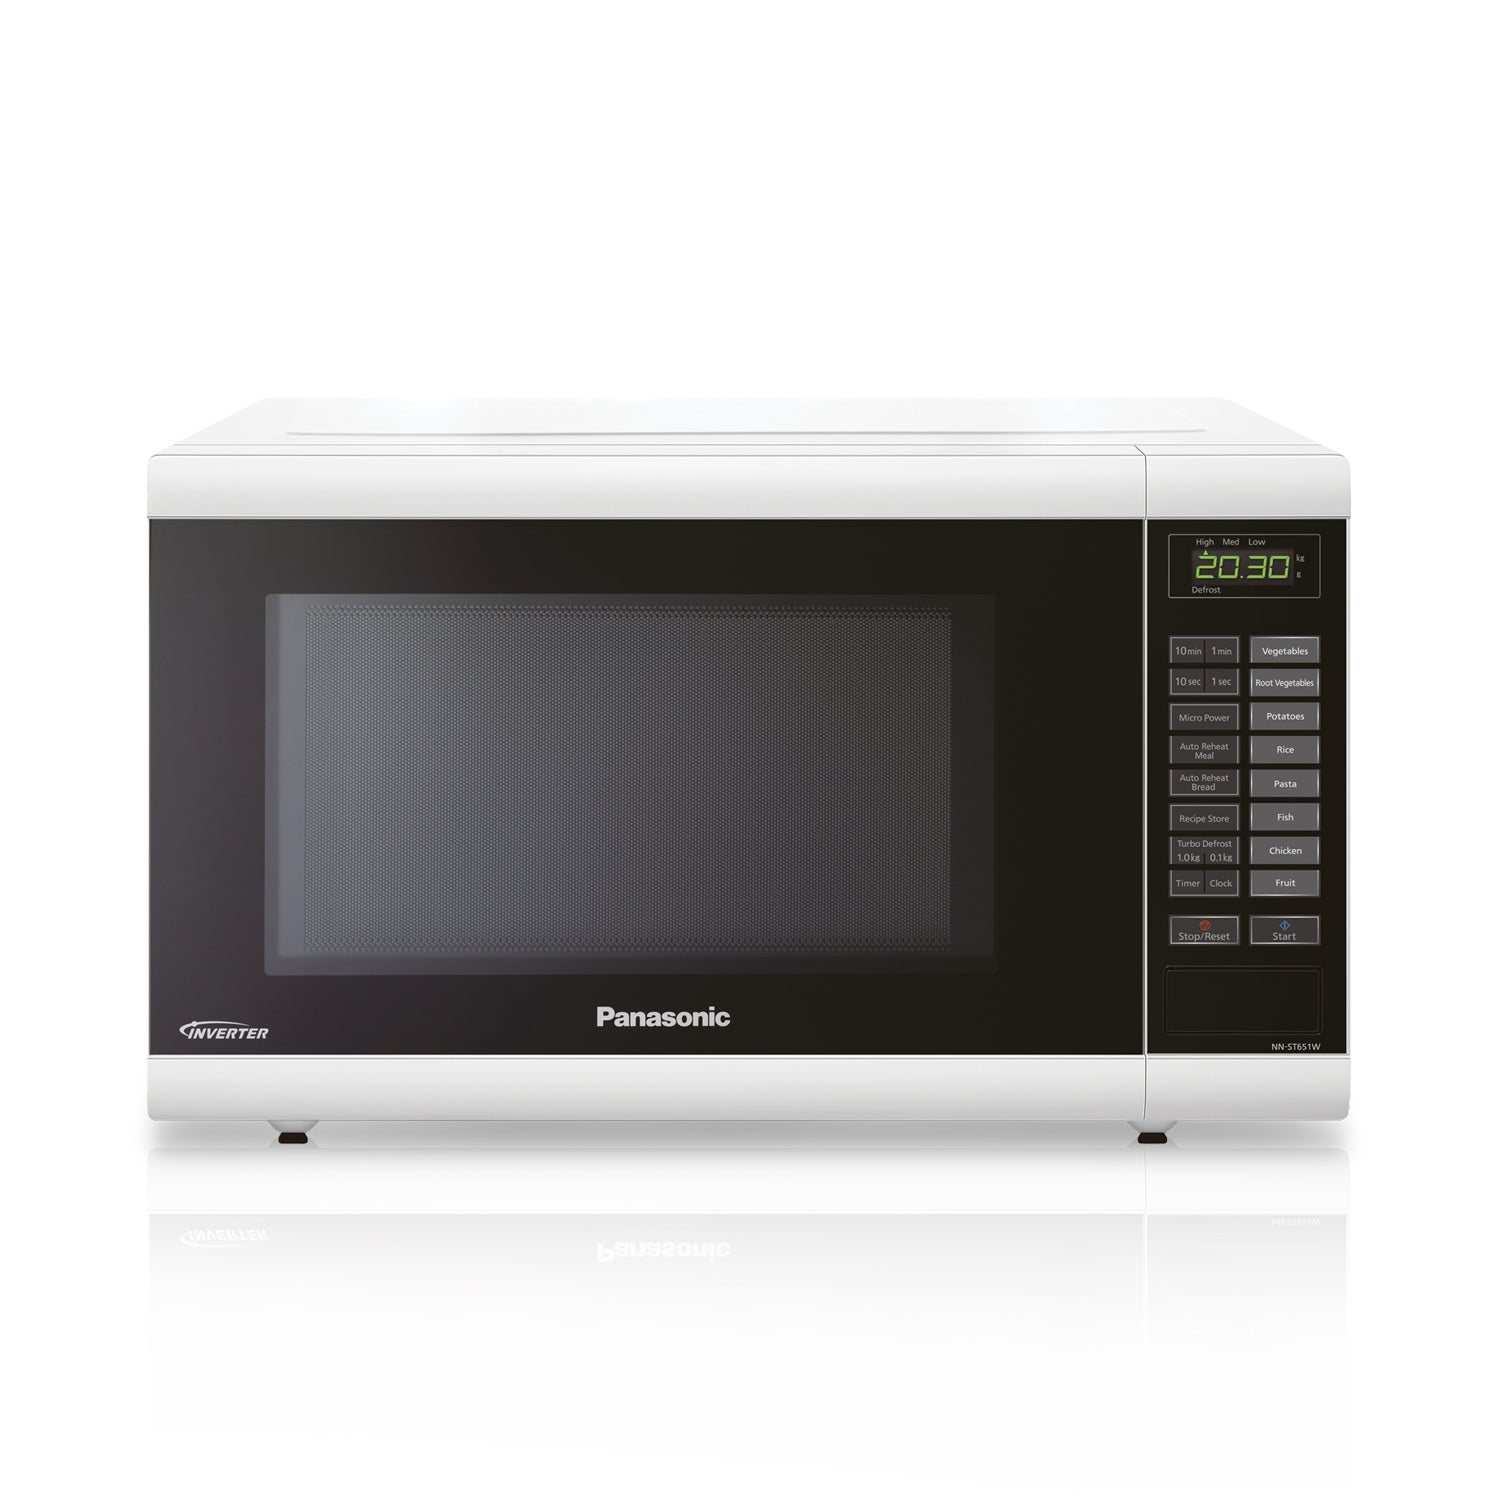 32L Solo Microwave Oven